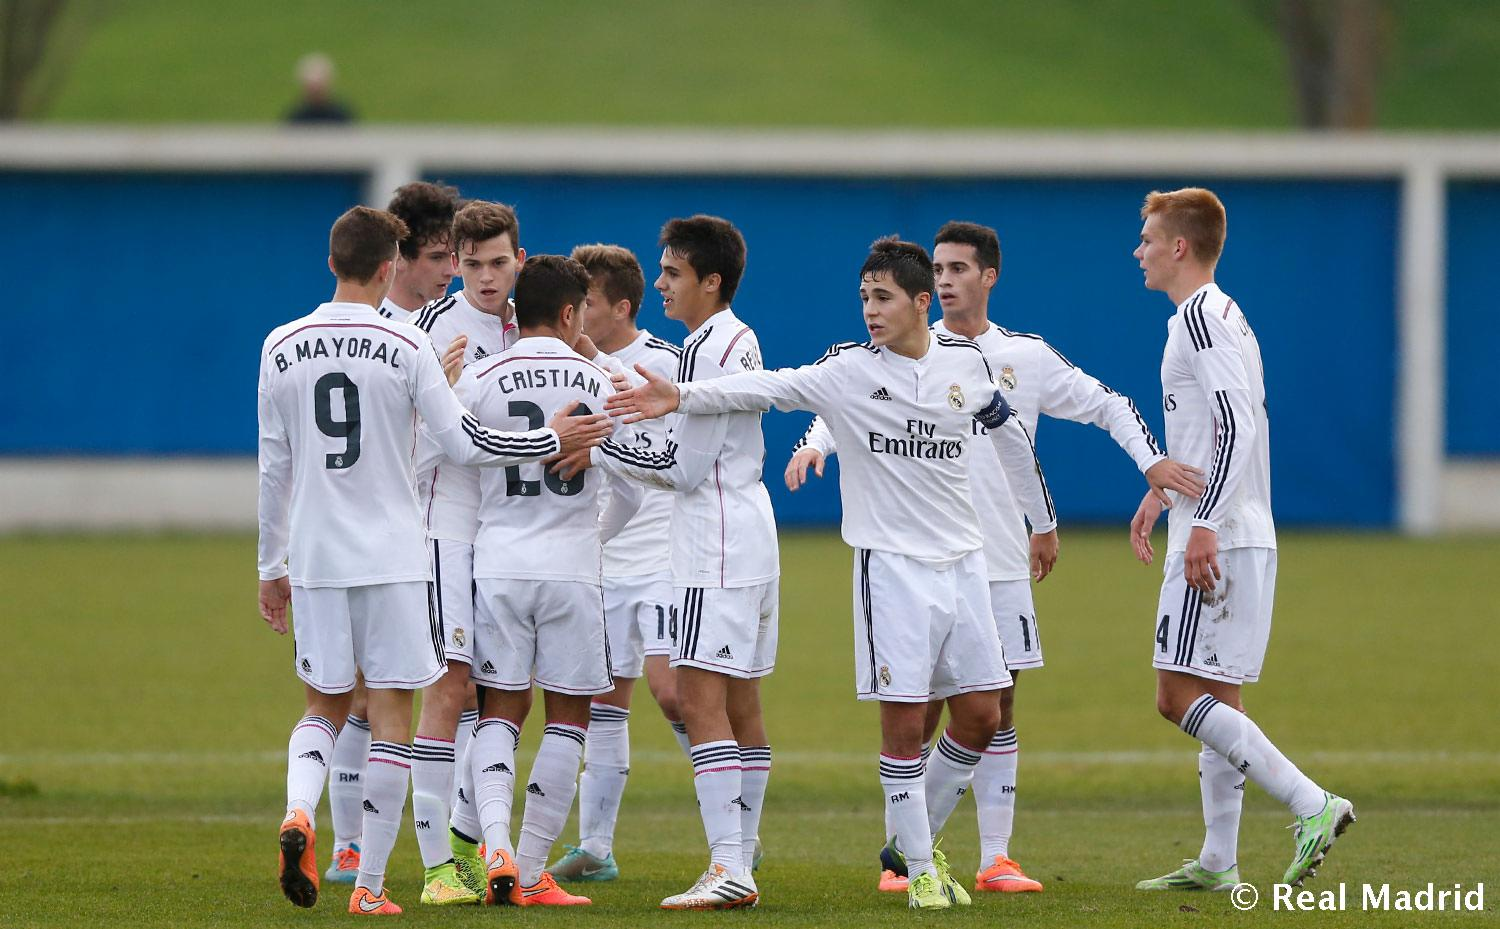 Real Madrid - Basilea - Juvenil A - 26-11-2014